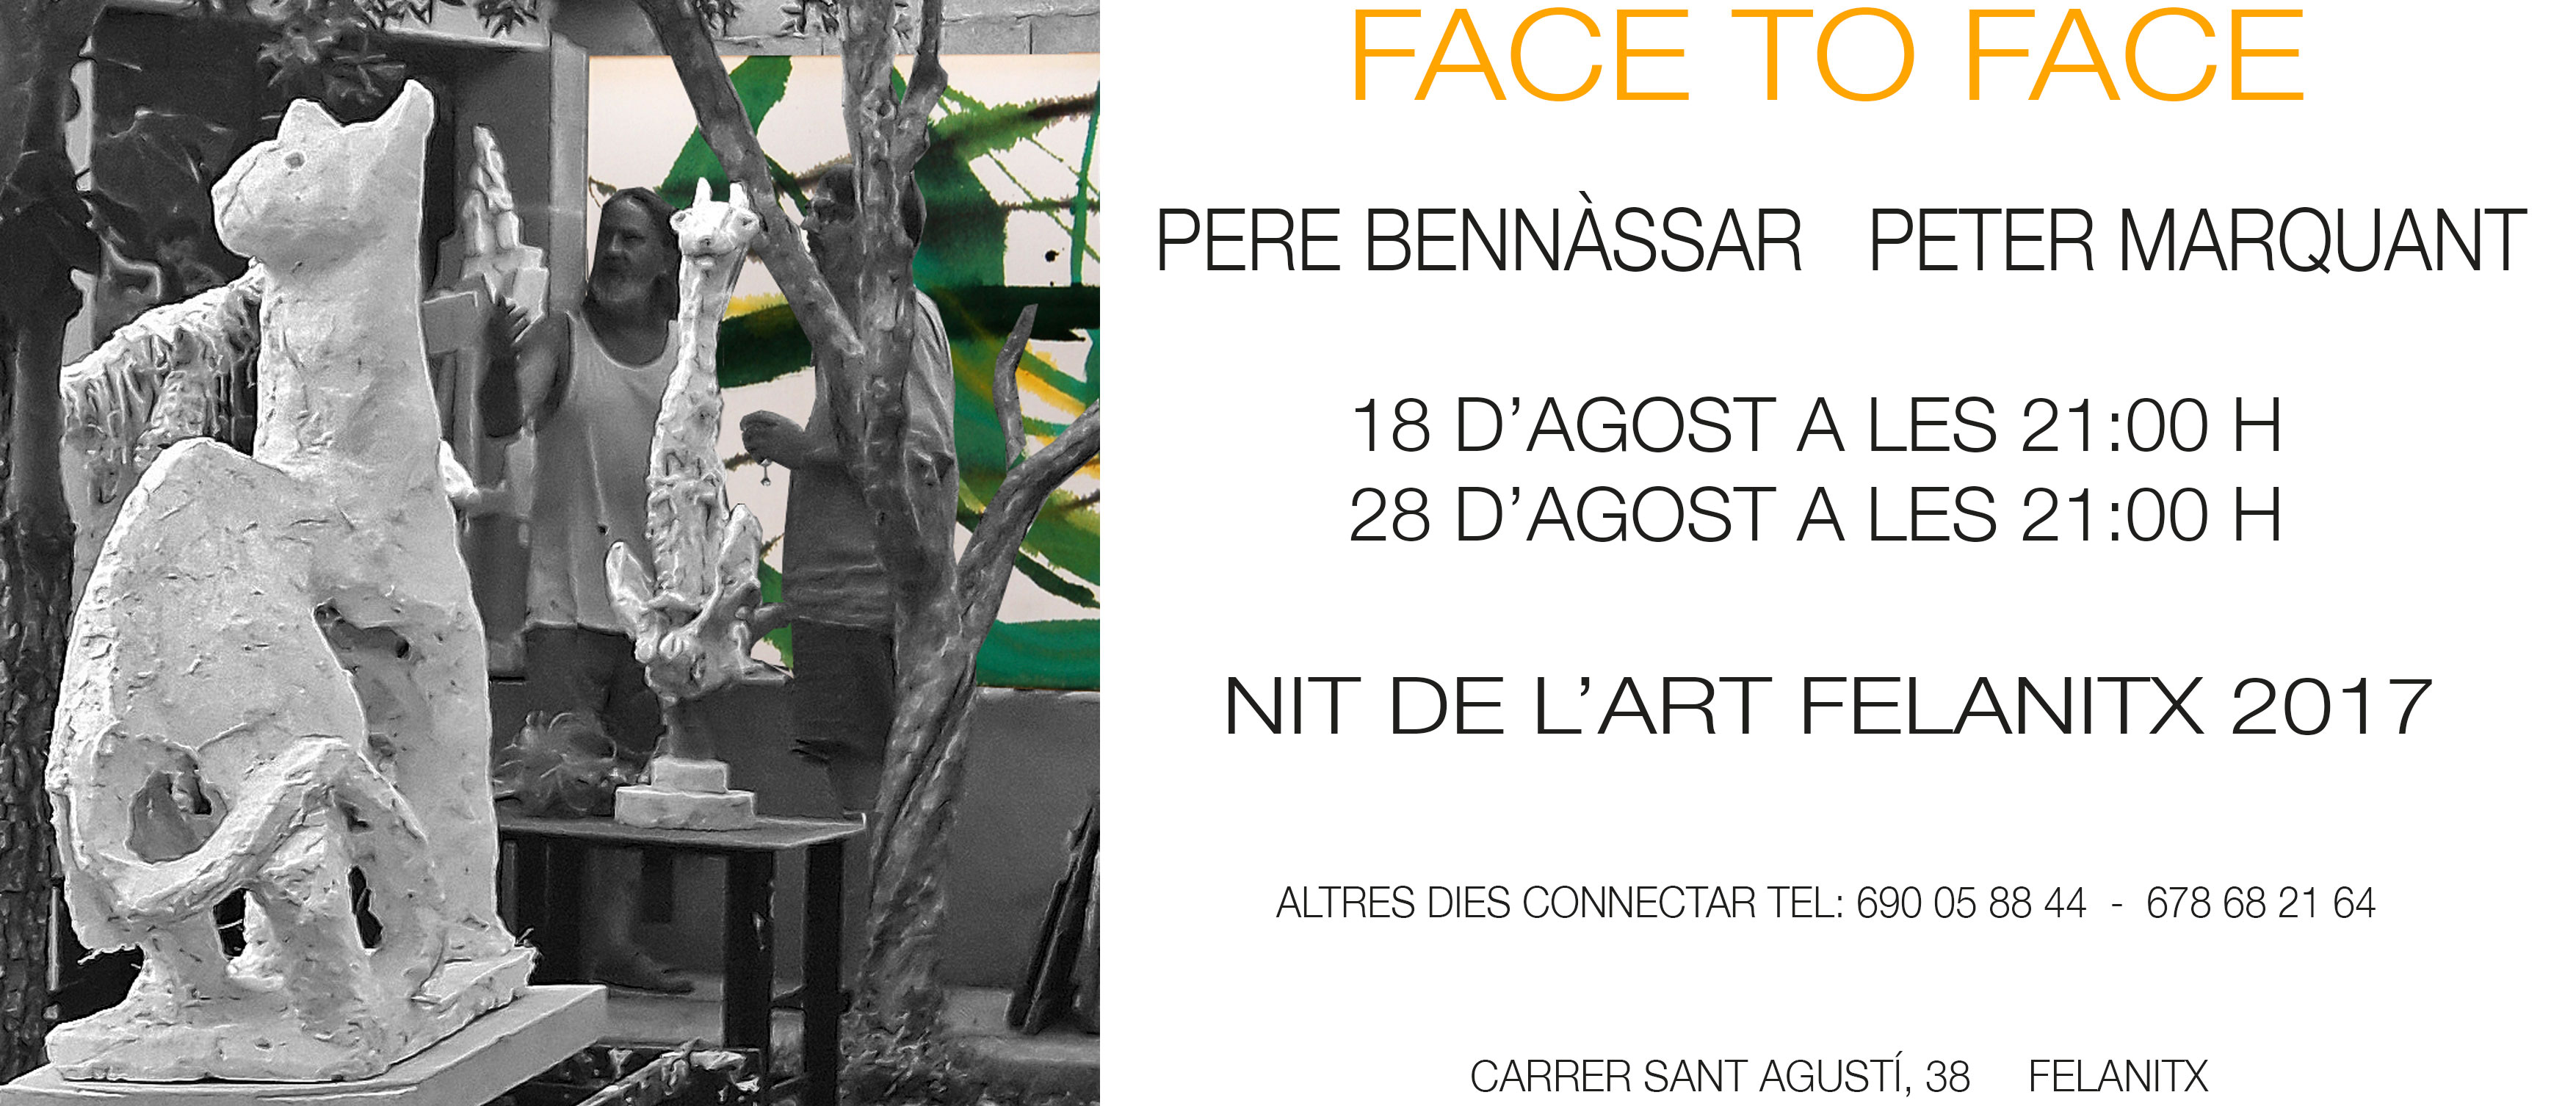 FACE to FACE Pere Bennàssar Peter Marquant Felanitx 2017